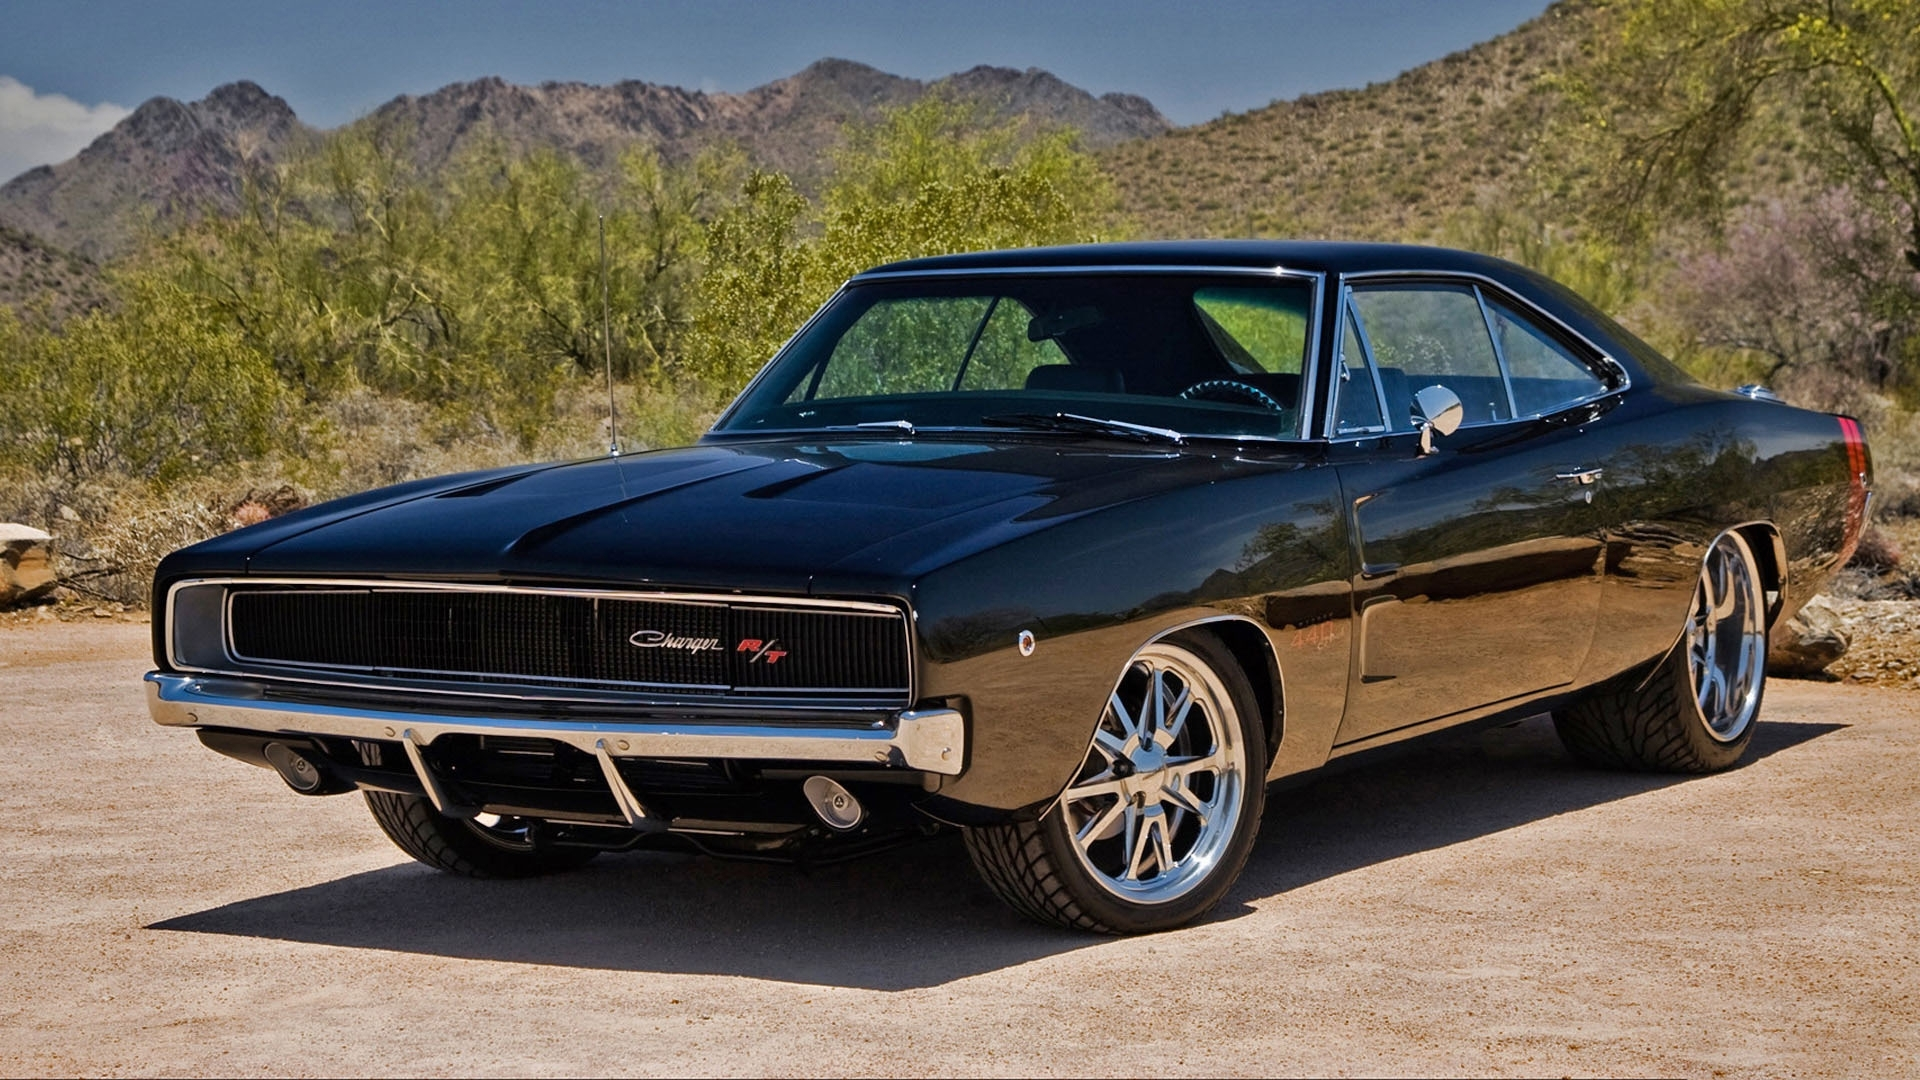 1970 dodge charger black and red - google search | classic cars